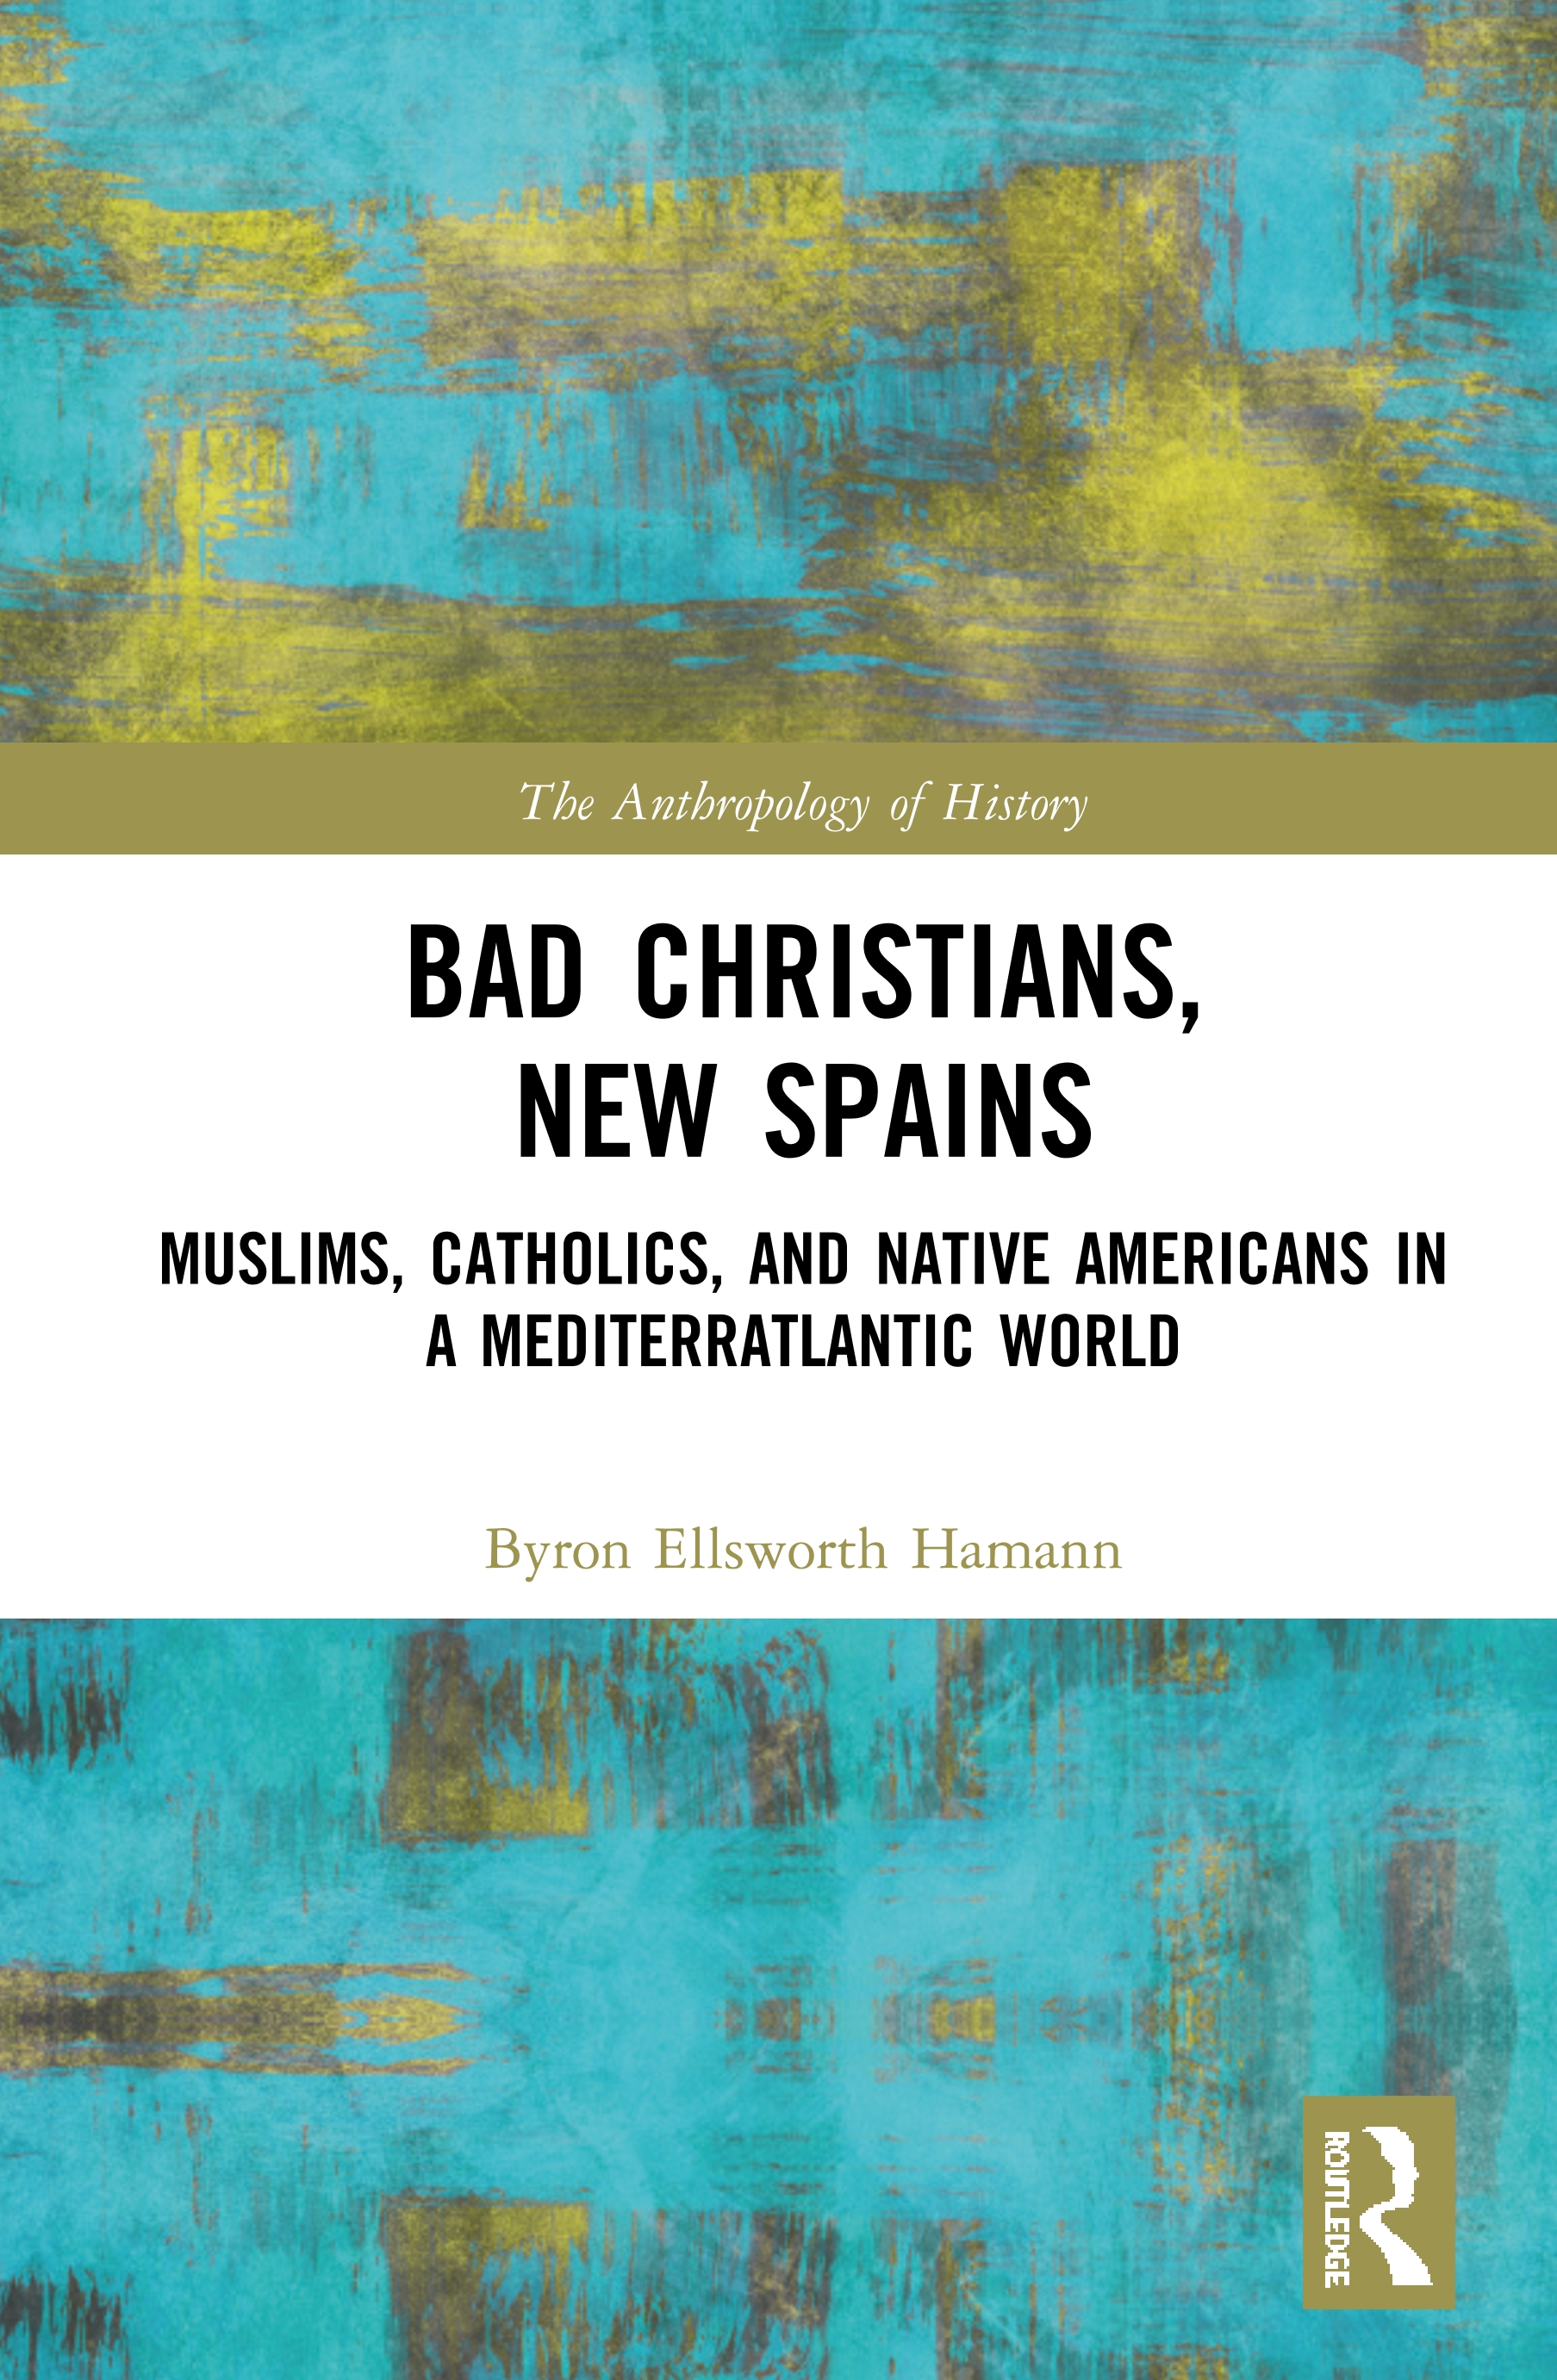 Bad Christians, New Spains: Muslims, Catholics, and Native Americans in a Mediterratlantic World book cover